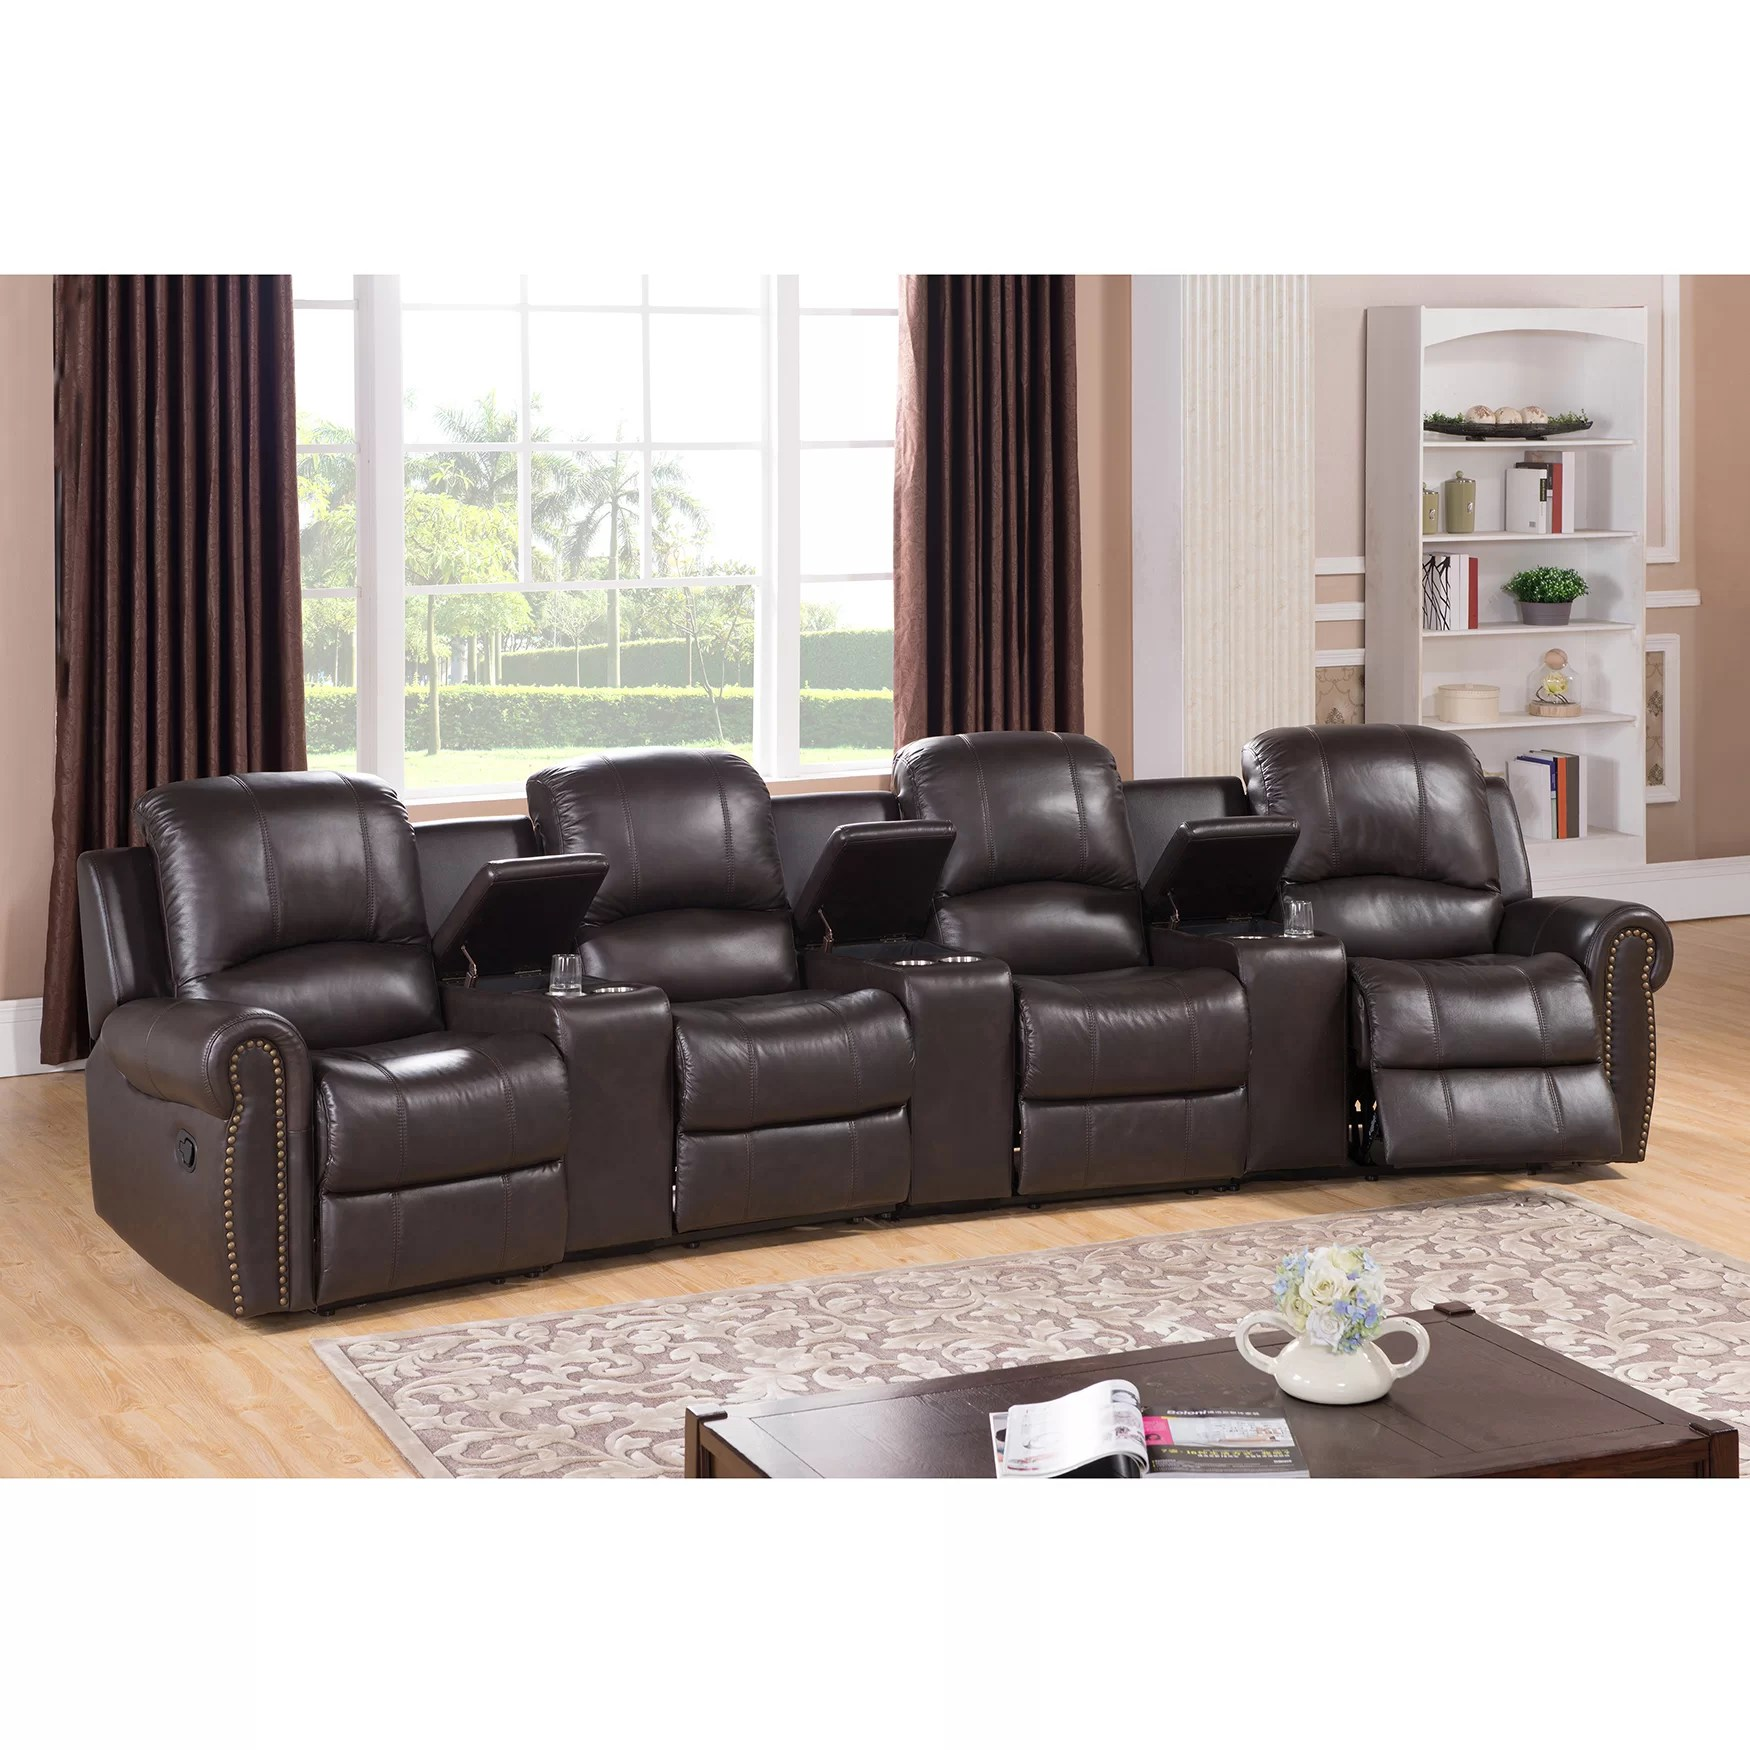 theater recliner chairs garden chair accessories amax bloomington leather 4 seat home theatre